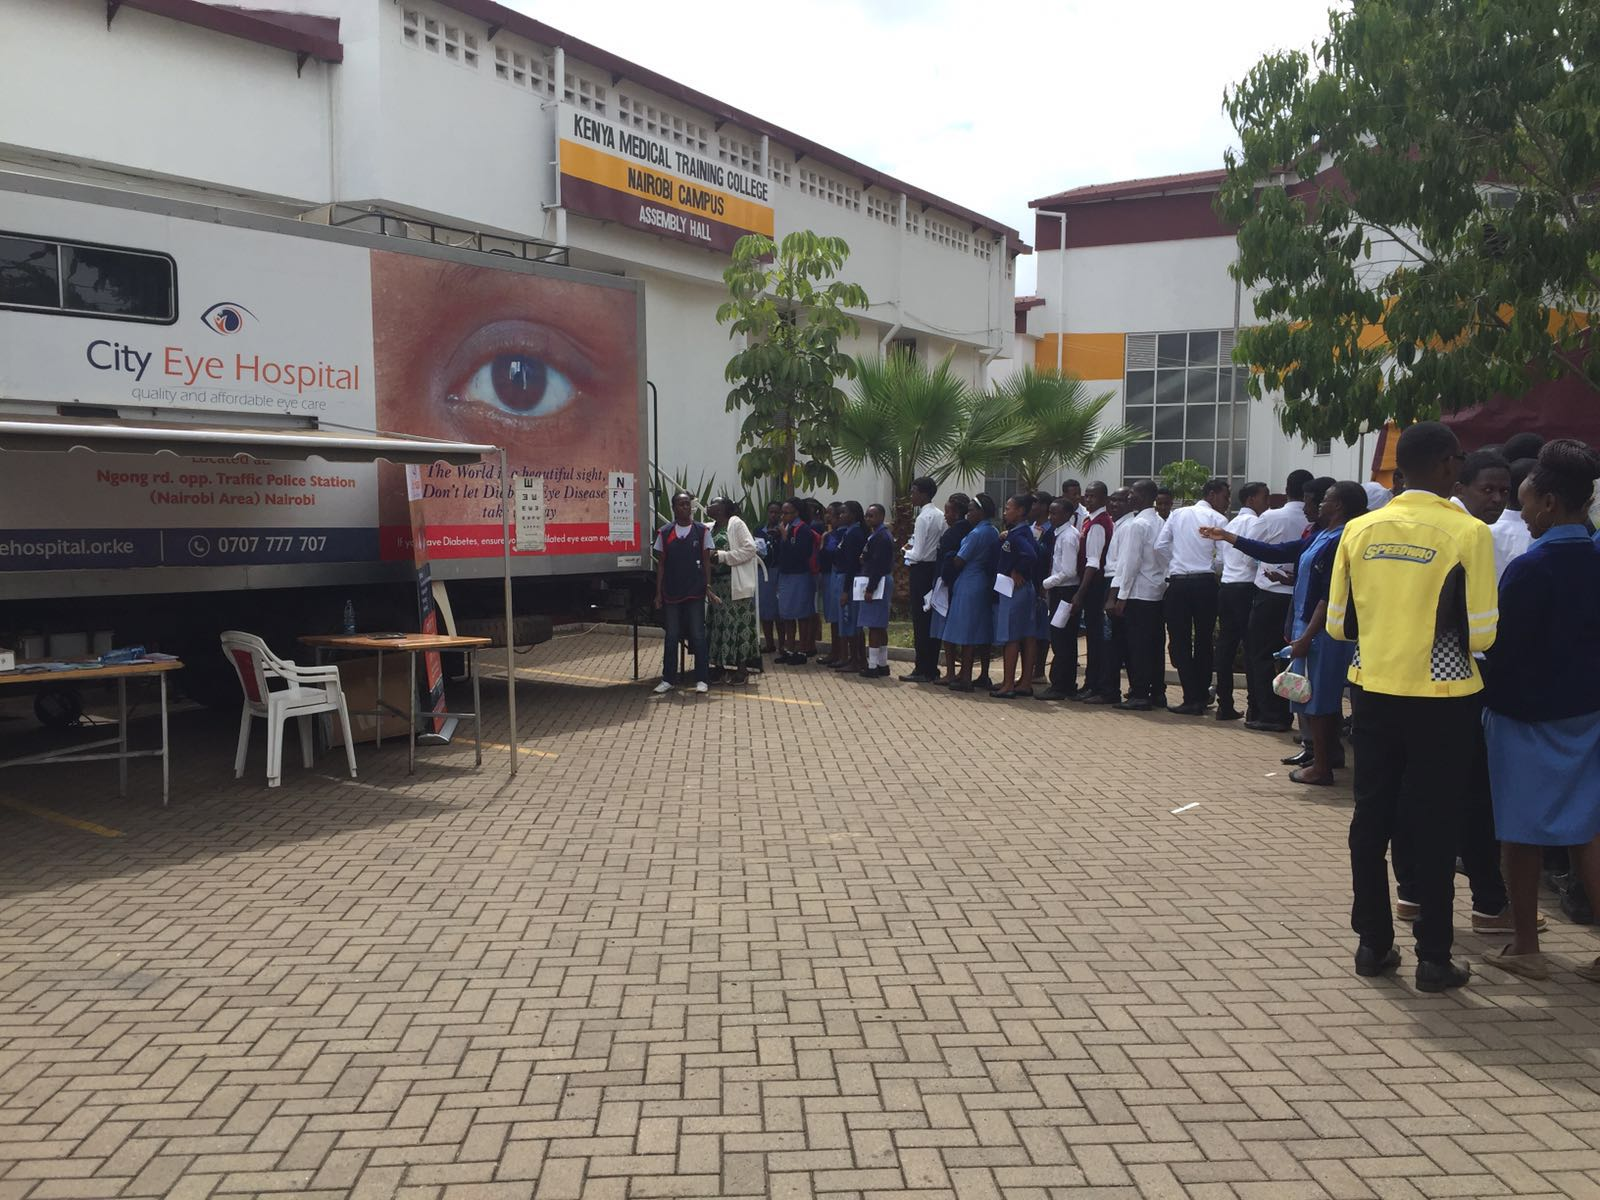 KMTC and City Eye Hospital partner to provide eye care services on World Diabetes Day